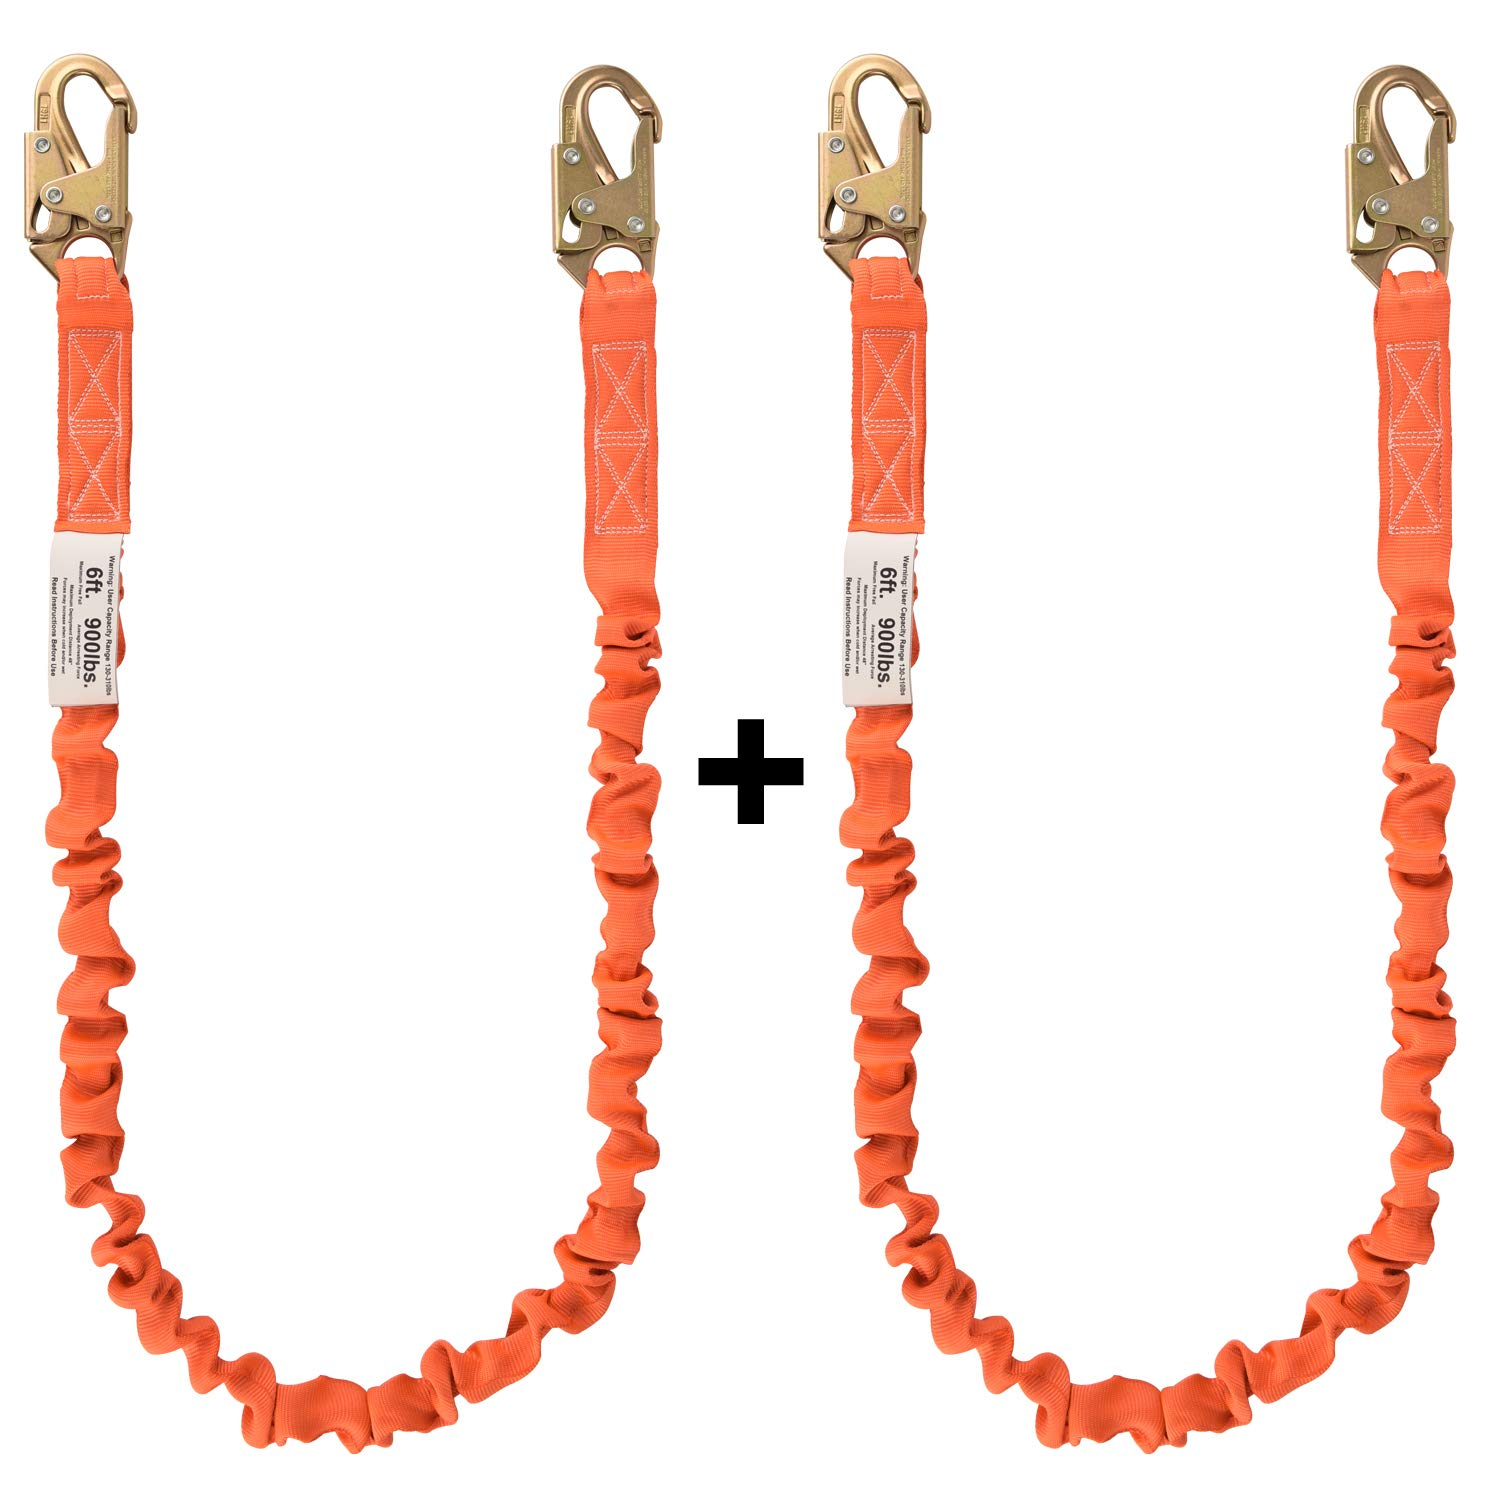 WELKFORDER 6-foot Internal Shock Absorbing Safety Lanyard with Double Snap Hook Connectors for Construction ANSI Z359.13-2013 Compliant Fall Protection Equipment( 2 PACK)